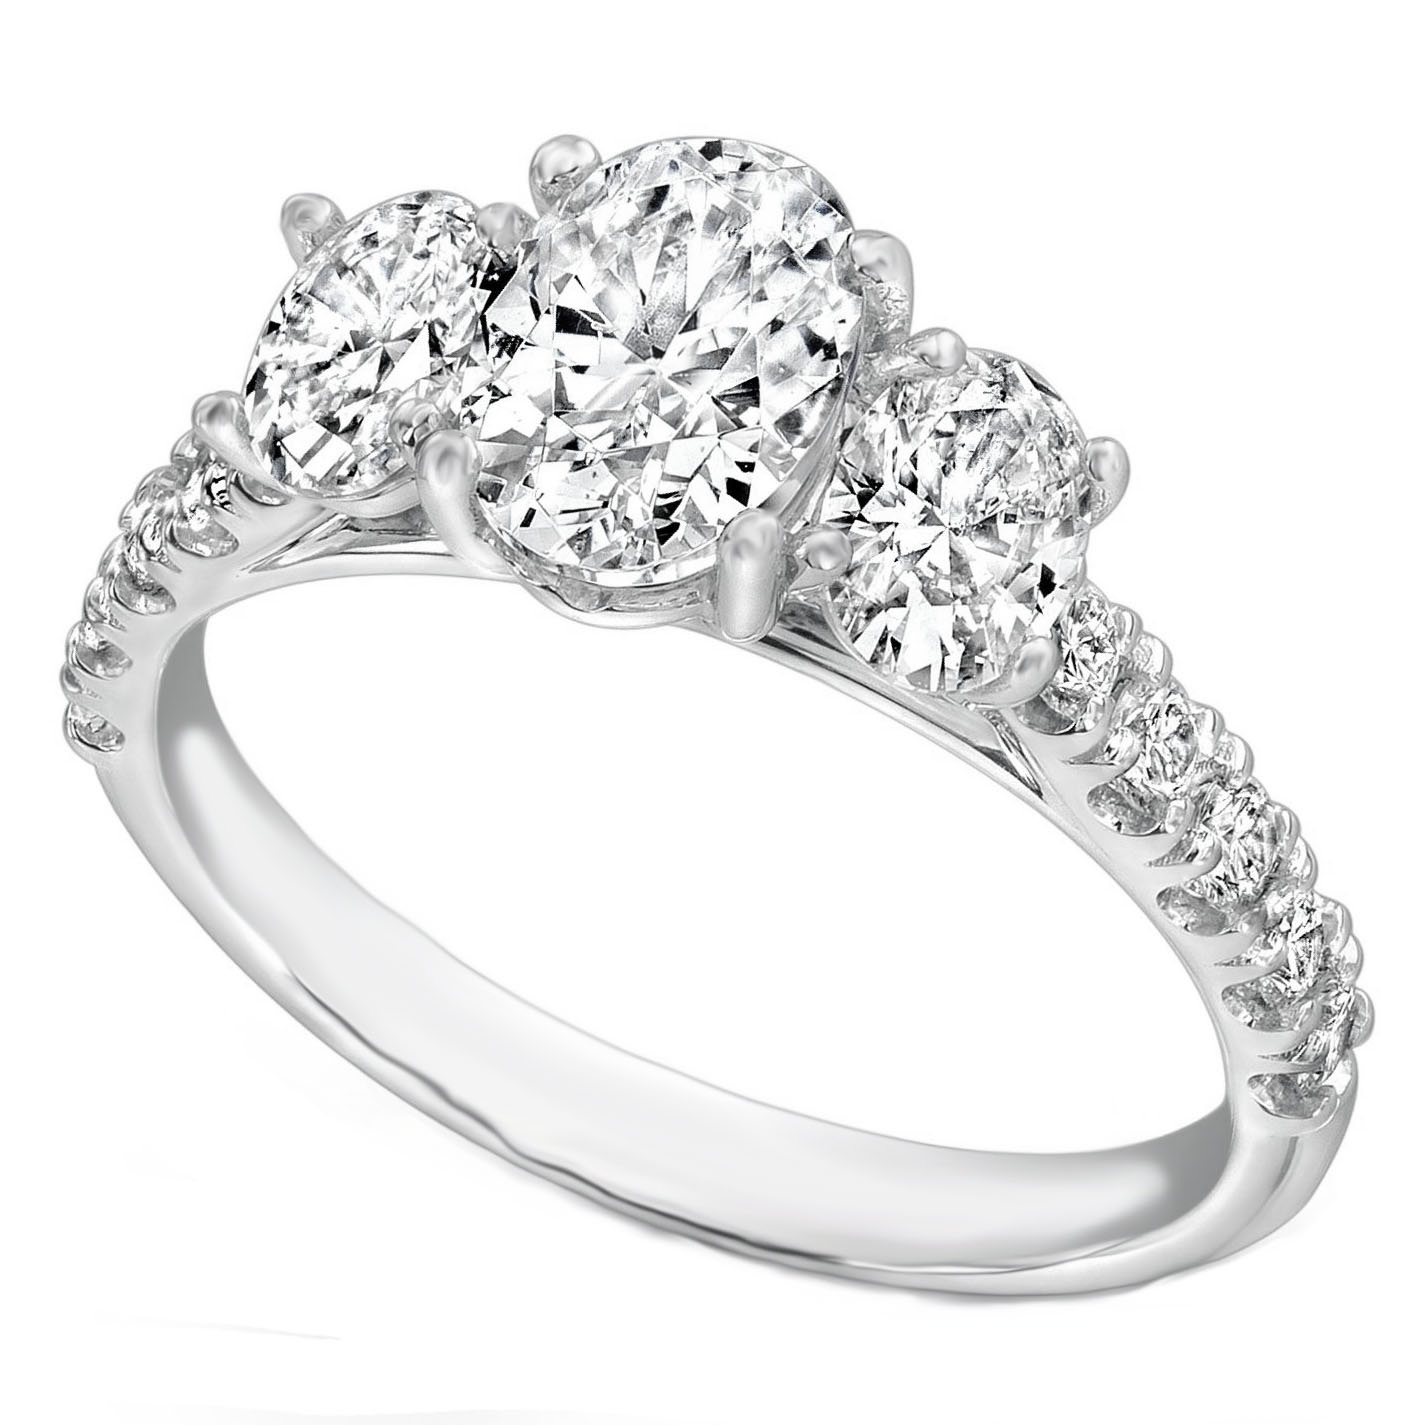 product moissanite engagement cushion ring cut rings evangeline cathedral cush evangelineb angle neo carat